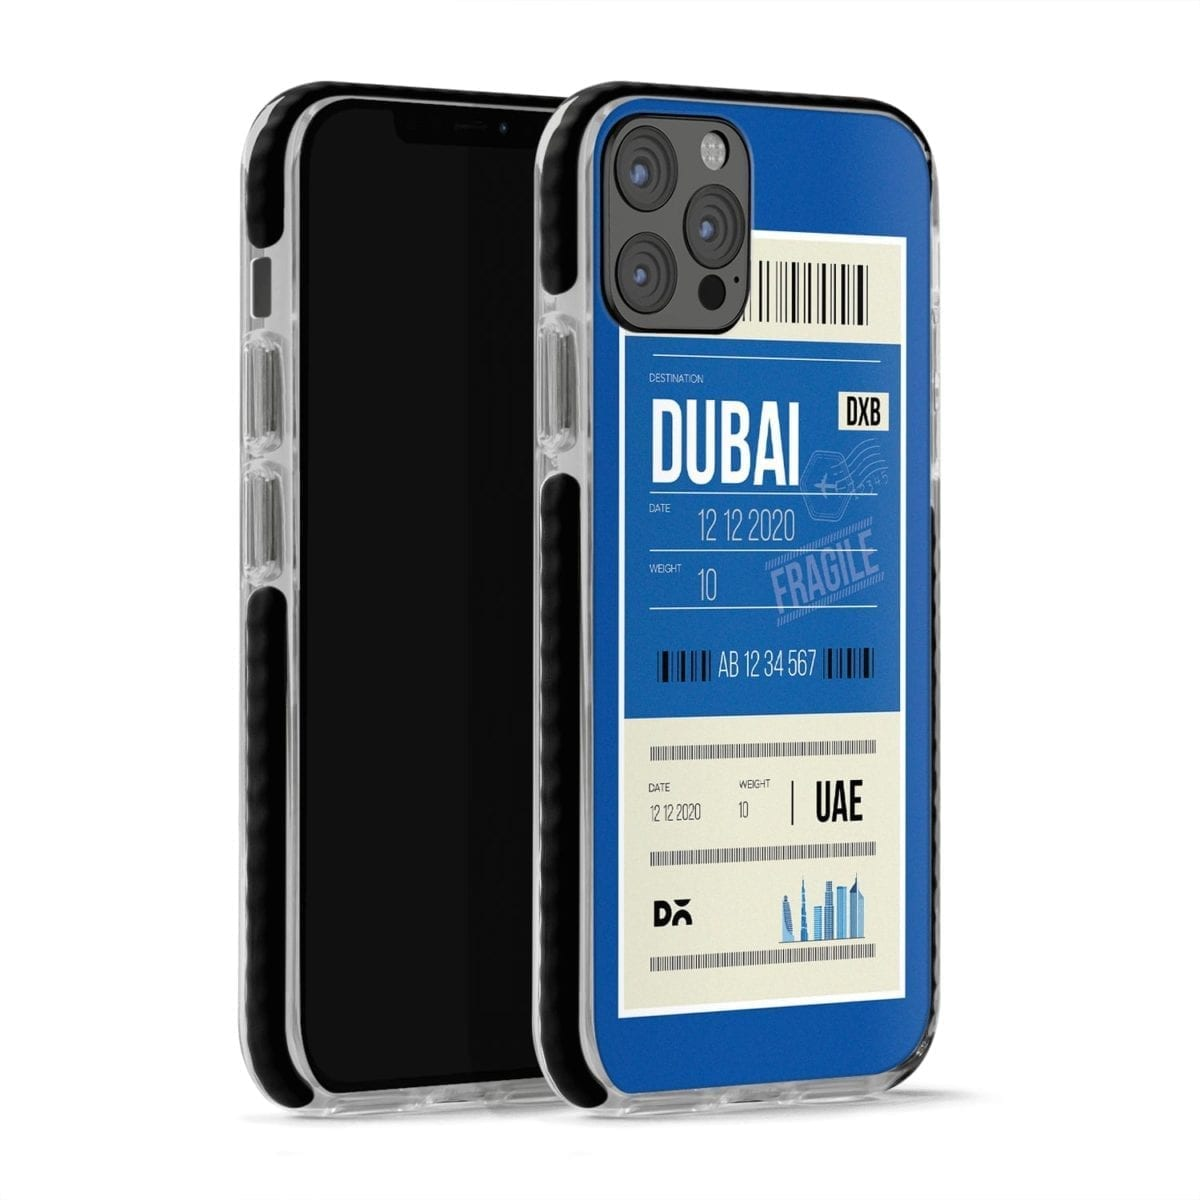 Dubai City Tag Stride Case Cover for Apple iPhone 12 Pro and Apple iPhone 12 Pro Max with great design and shock proof | Klippik | Online Shopping | Kuwait UAE Saudi